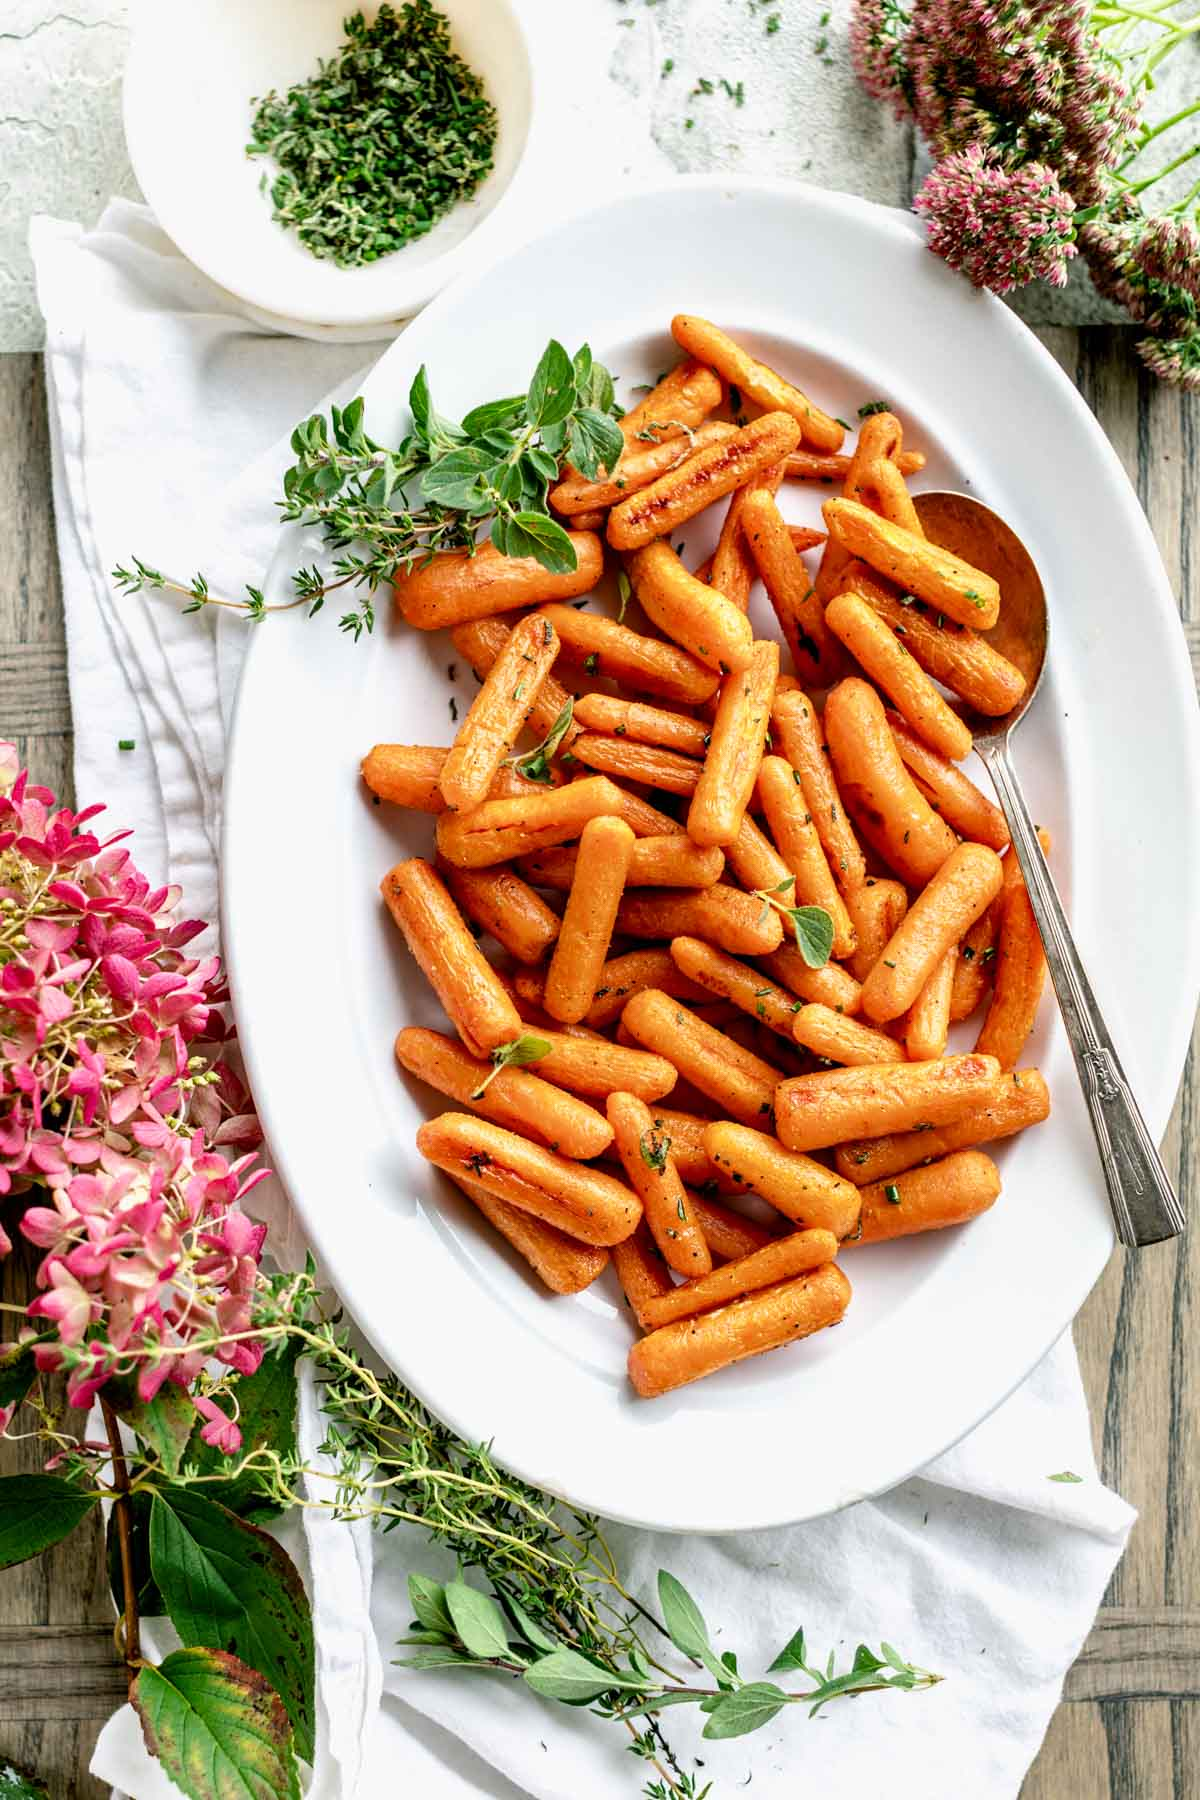 an oval platter with roasted baby carrots on it